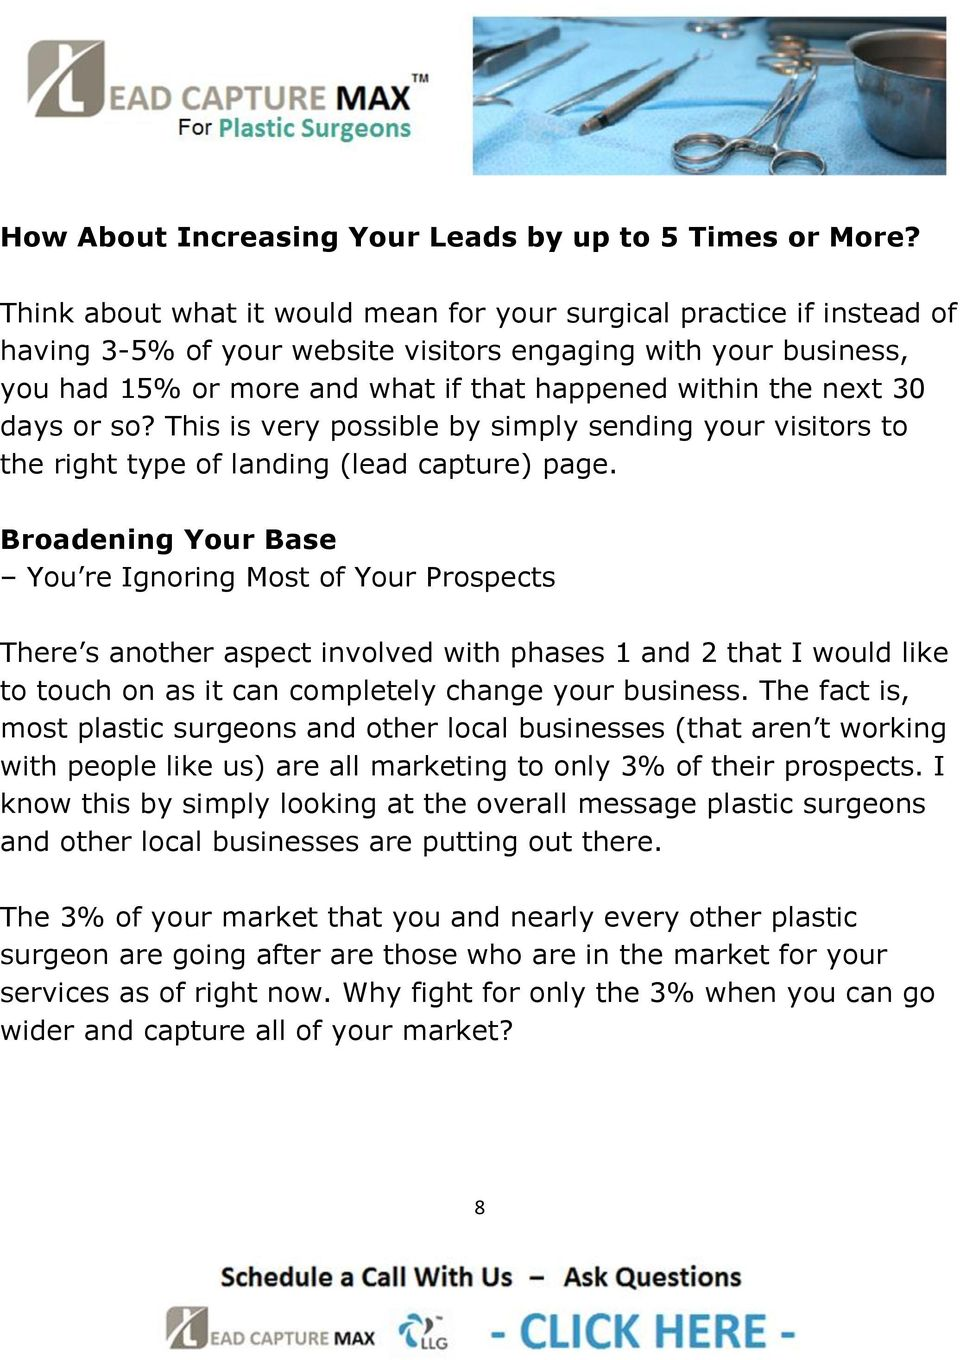 30 days or so? This is very possible by simply sending your visitors to the right type of landing (lead capture) page.